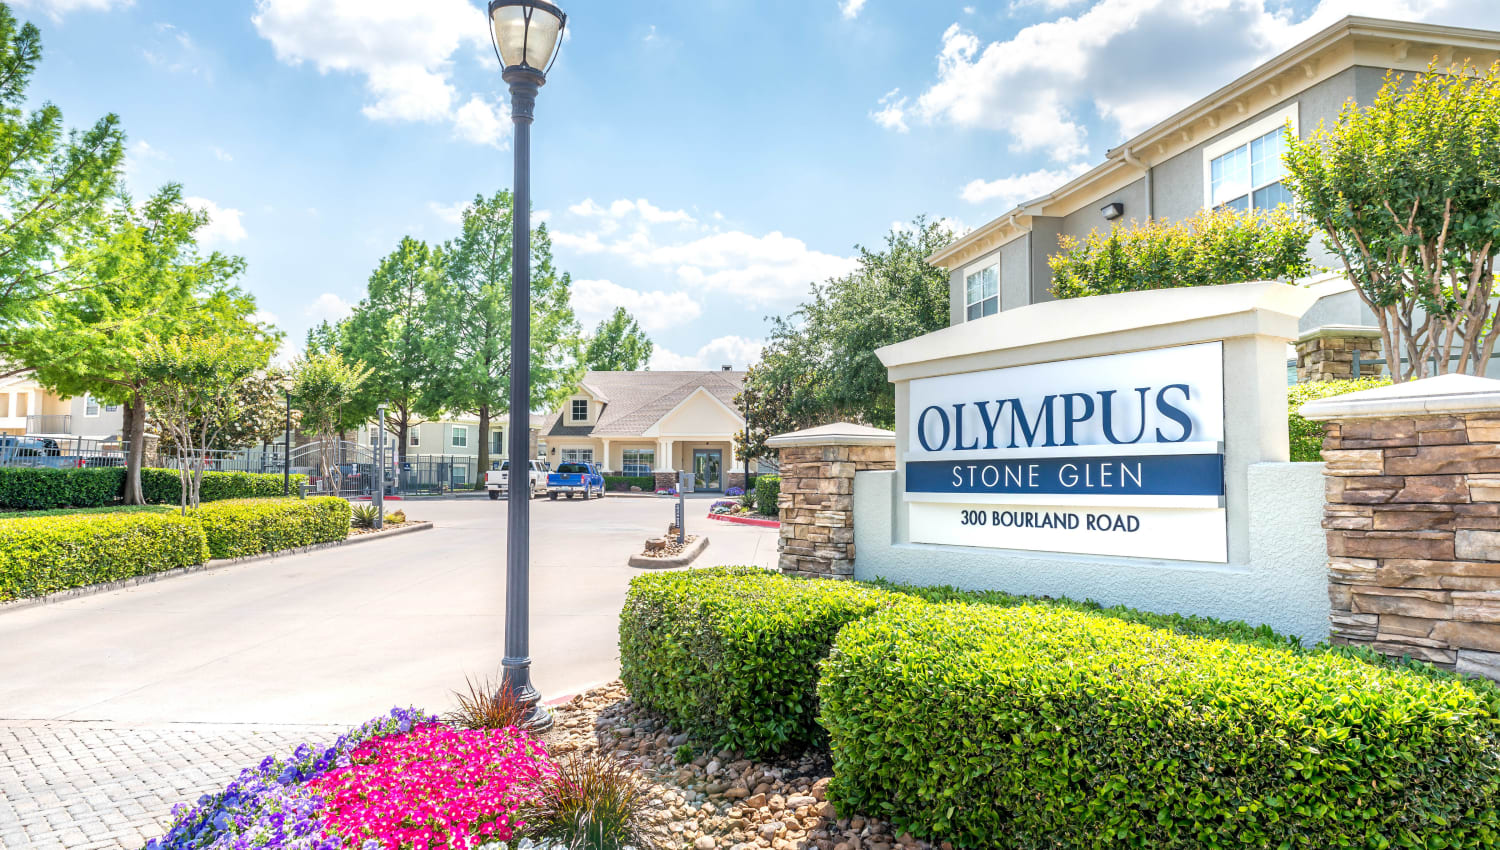 Our monument sign welcoming residents and guests to Olympus Stone Glen in Keller, Texas